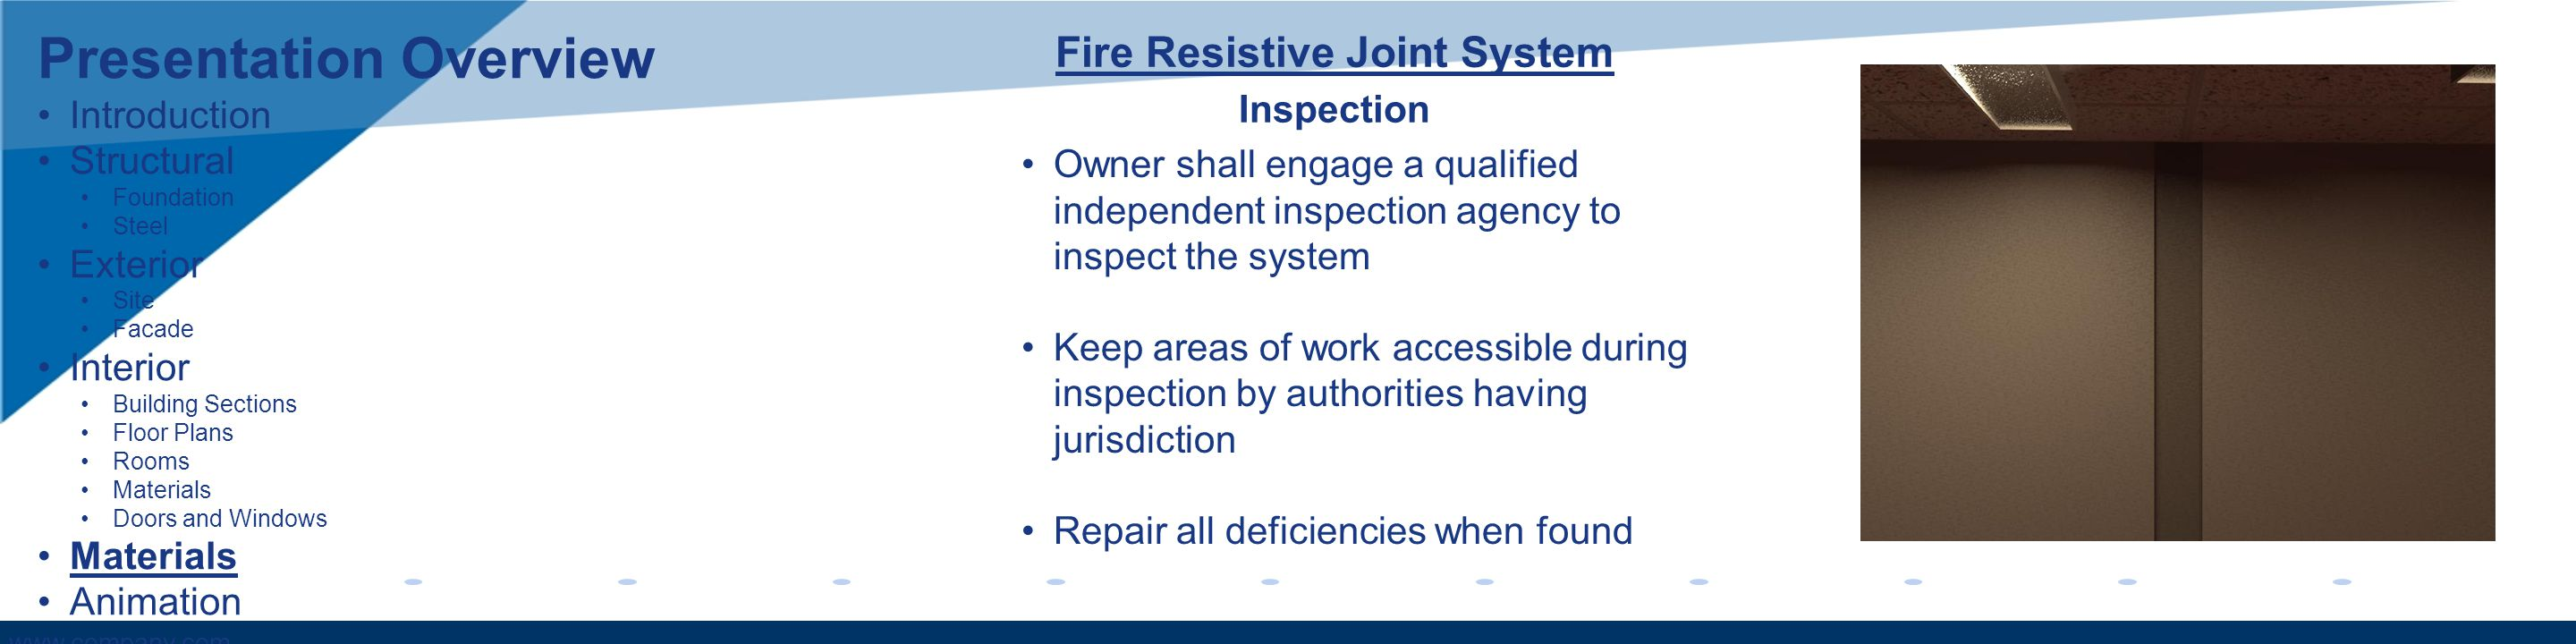 www.company.com Fire Resistive Joint System Owner shall engage a qualified independent inspection agency to inspect the system Keep areas of work accessible during inspection by authorities having jurisdiction Repair all deficiencies when found Inspection Presentation Overview Introduction Structural Foundation Steel Exterior Site Facade Interior Building Sections Floor Plans Rooms Materials Doors and Windows Materials Animation